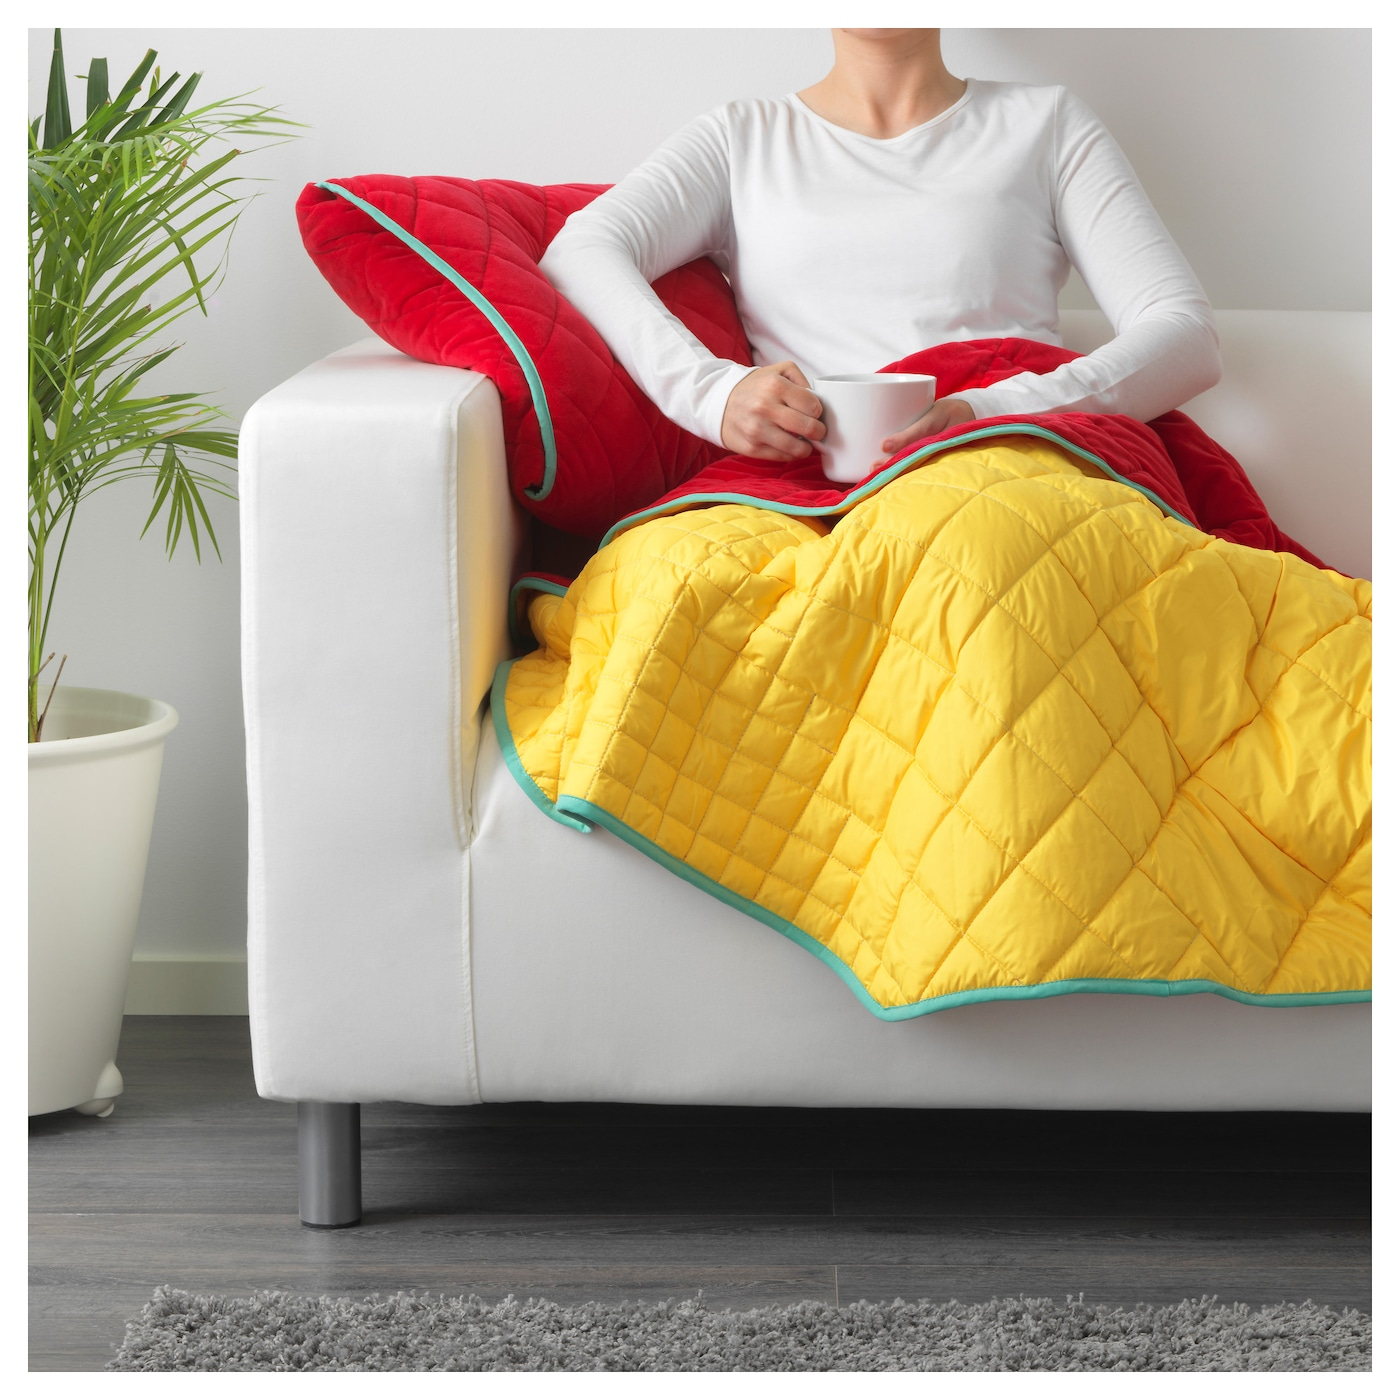 IKEA IKEA PS 2017 throw with cushion cover